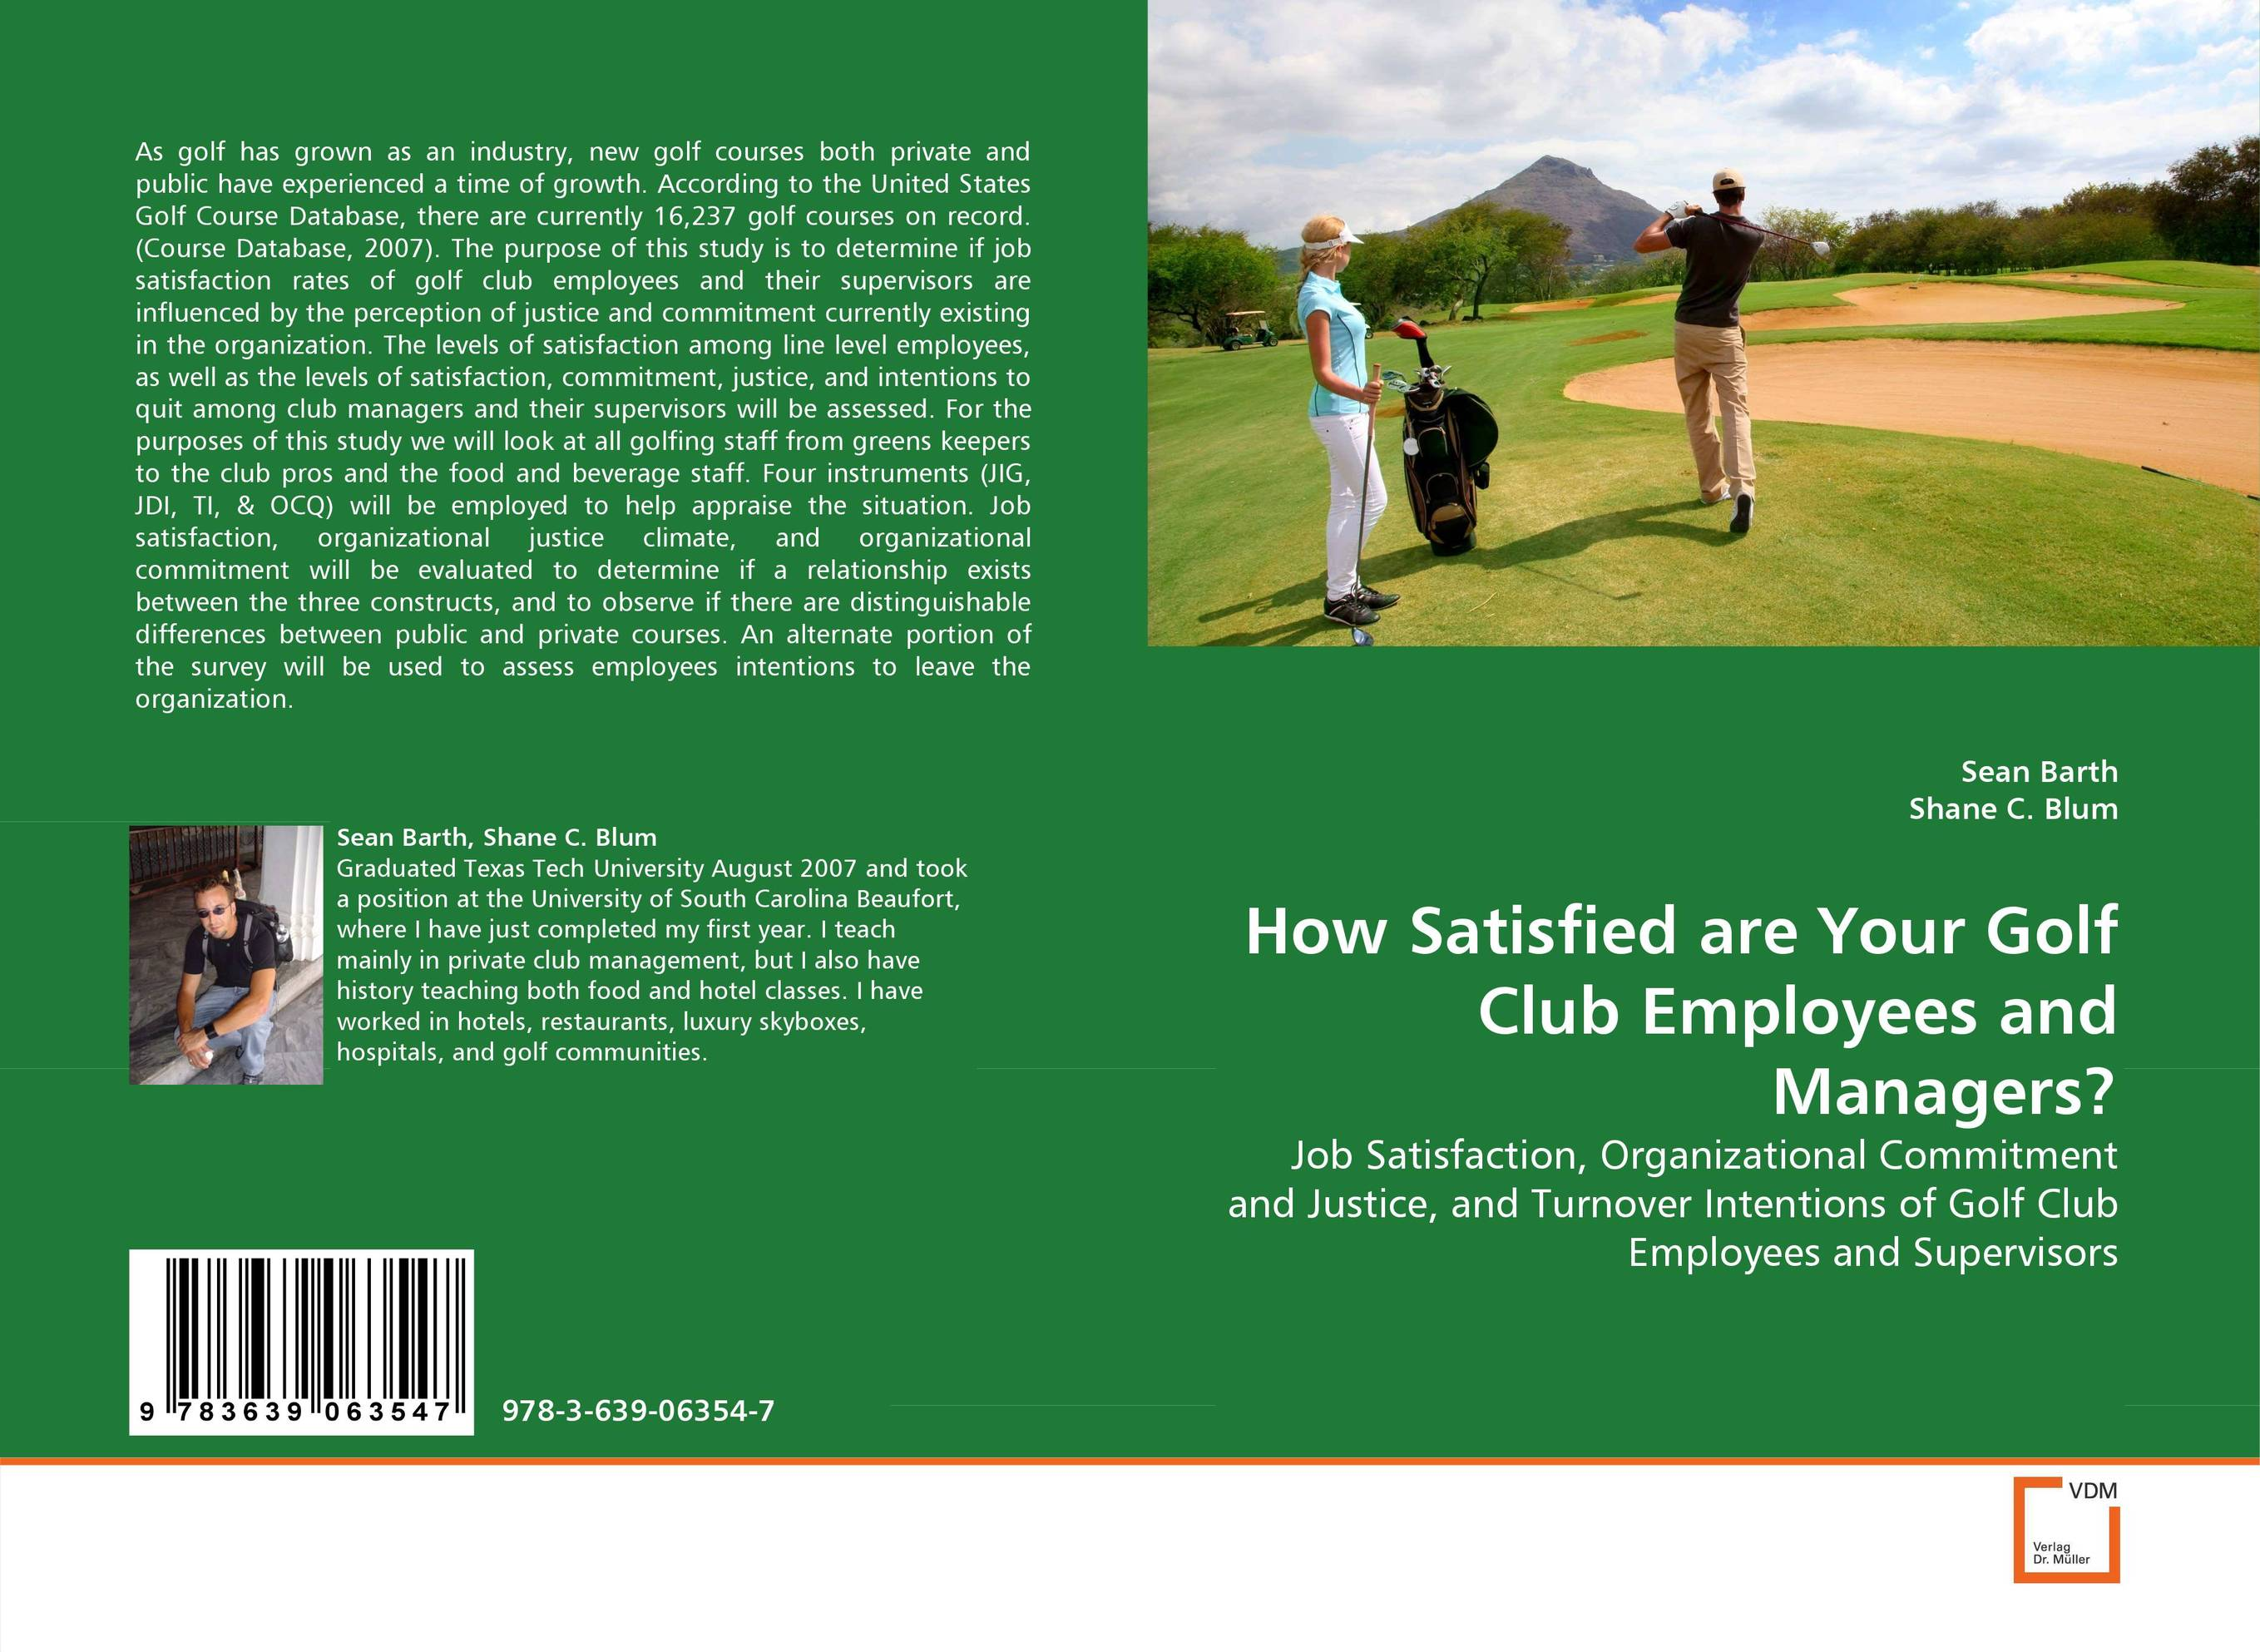 How Satisfied are Your Golf Club Employees and Managers? impact of job satisfaction on turnover intentions